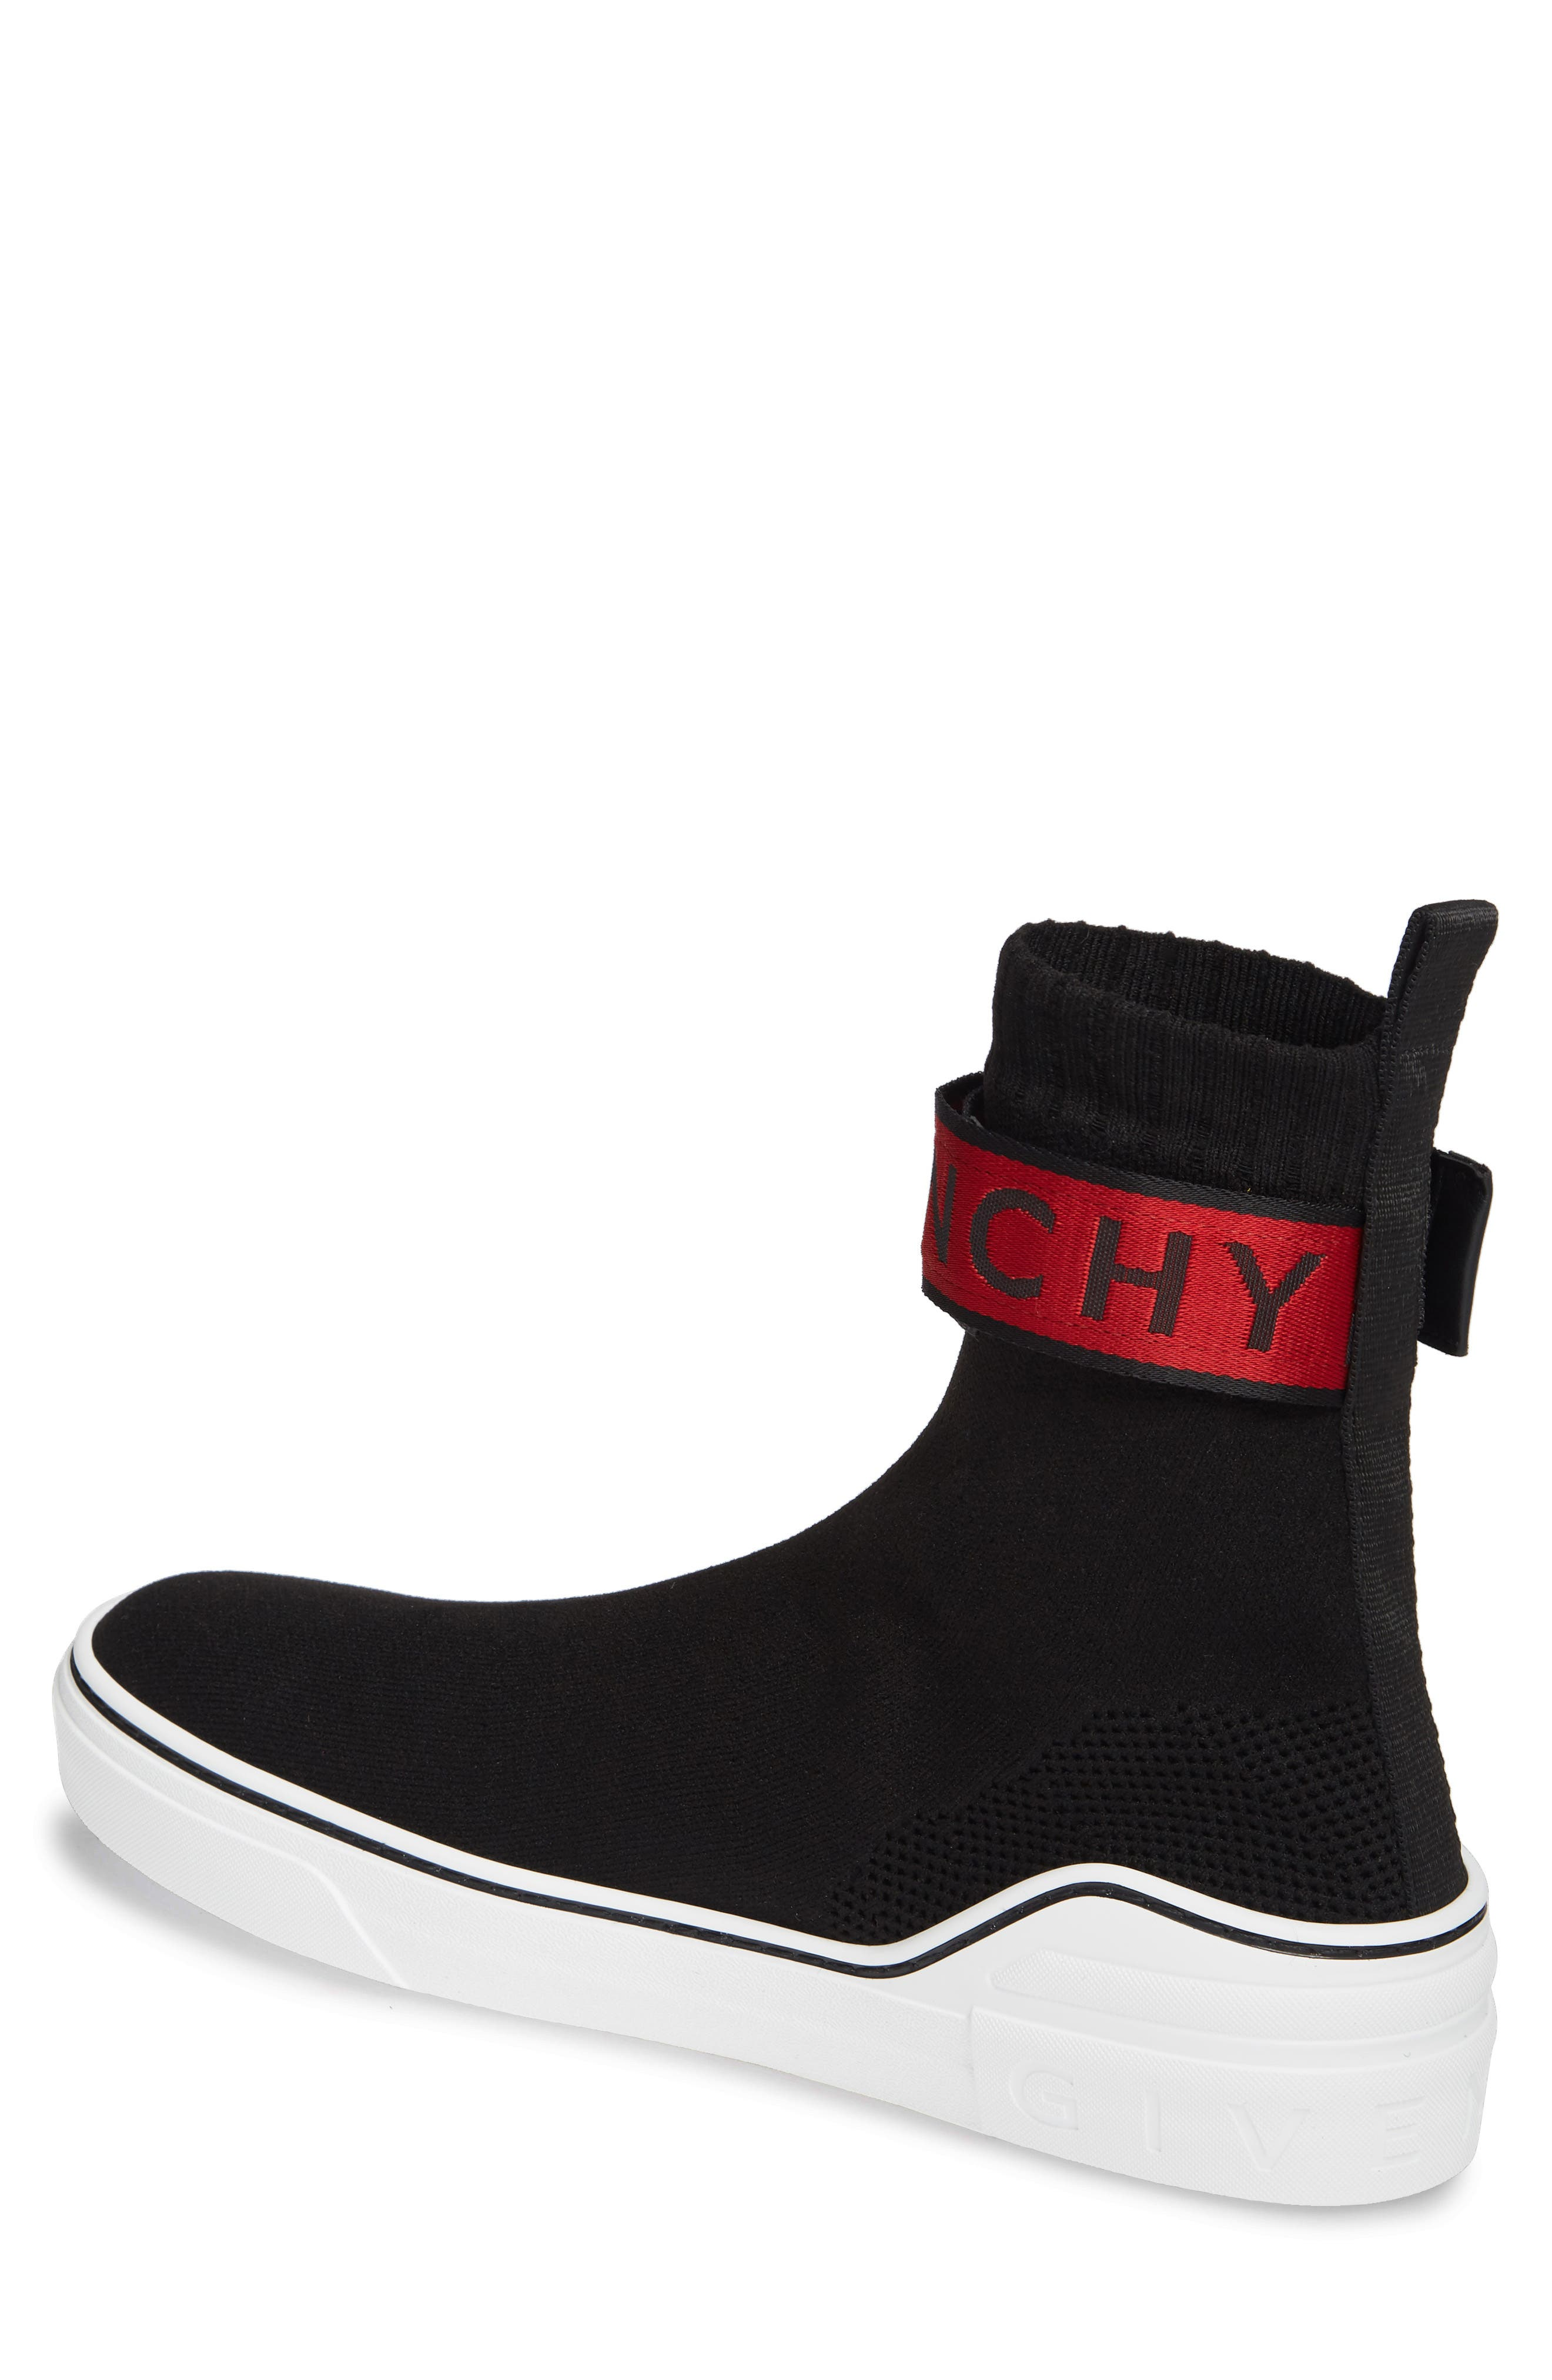 GIVENCHY, George V Sneaker, Alternate thumbnail 2, color, 009